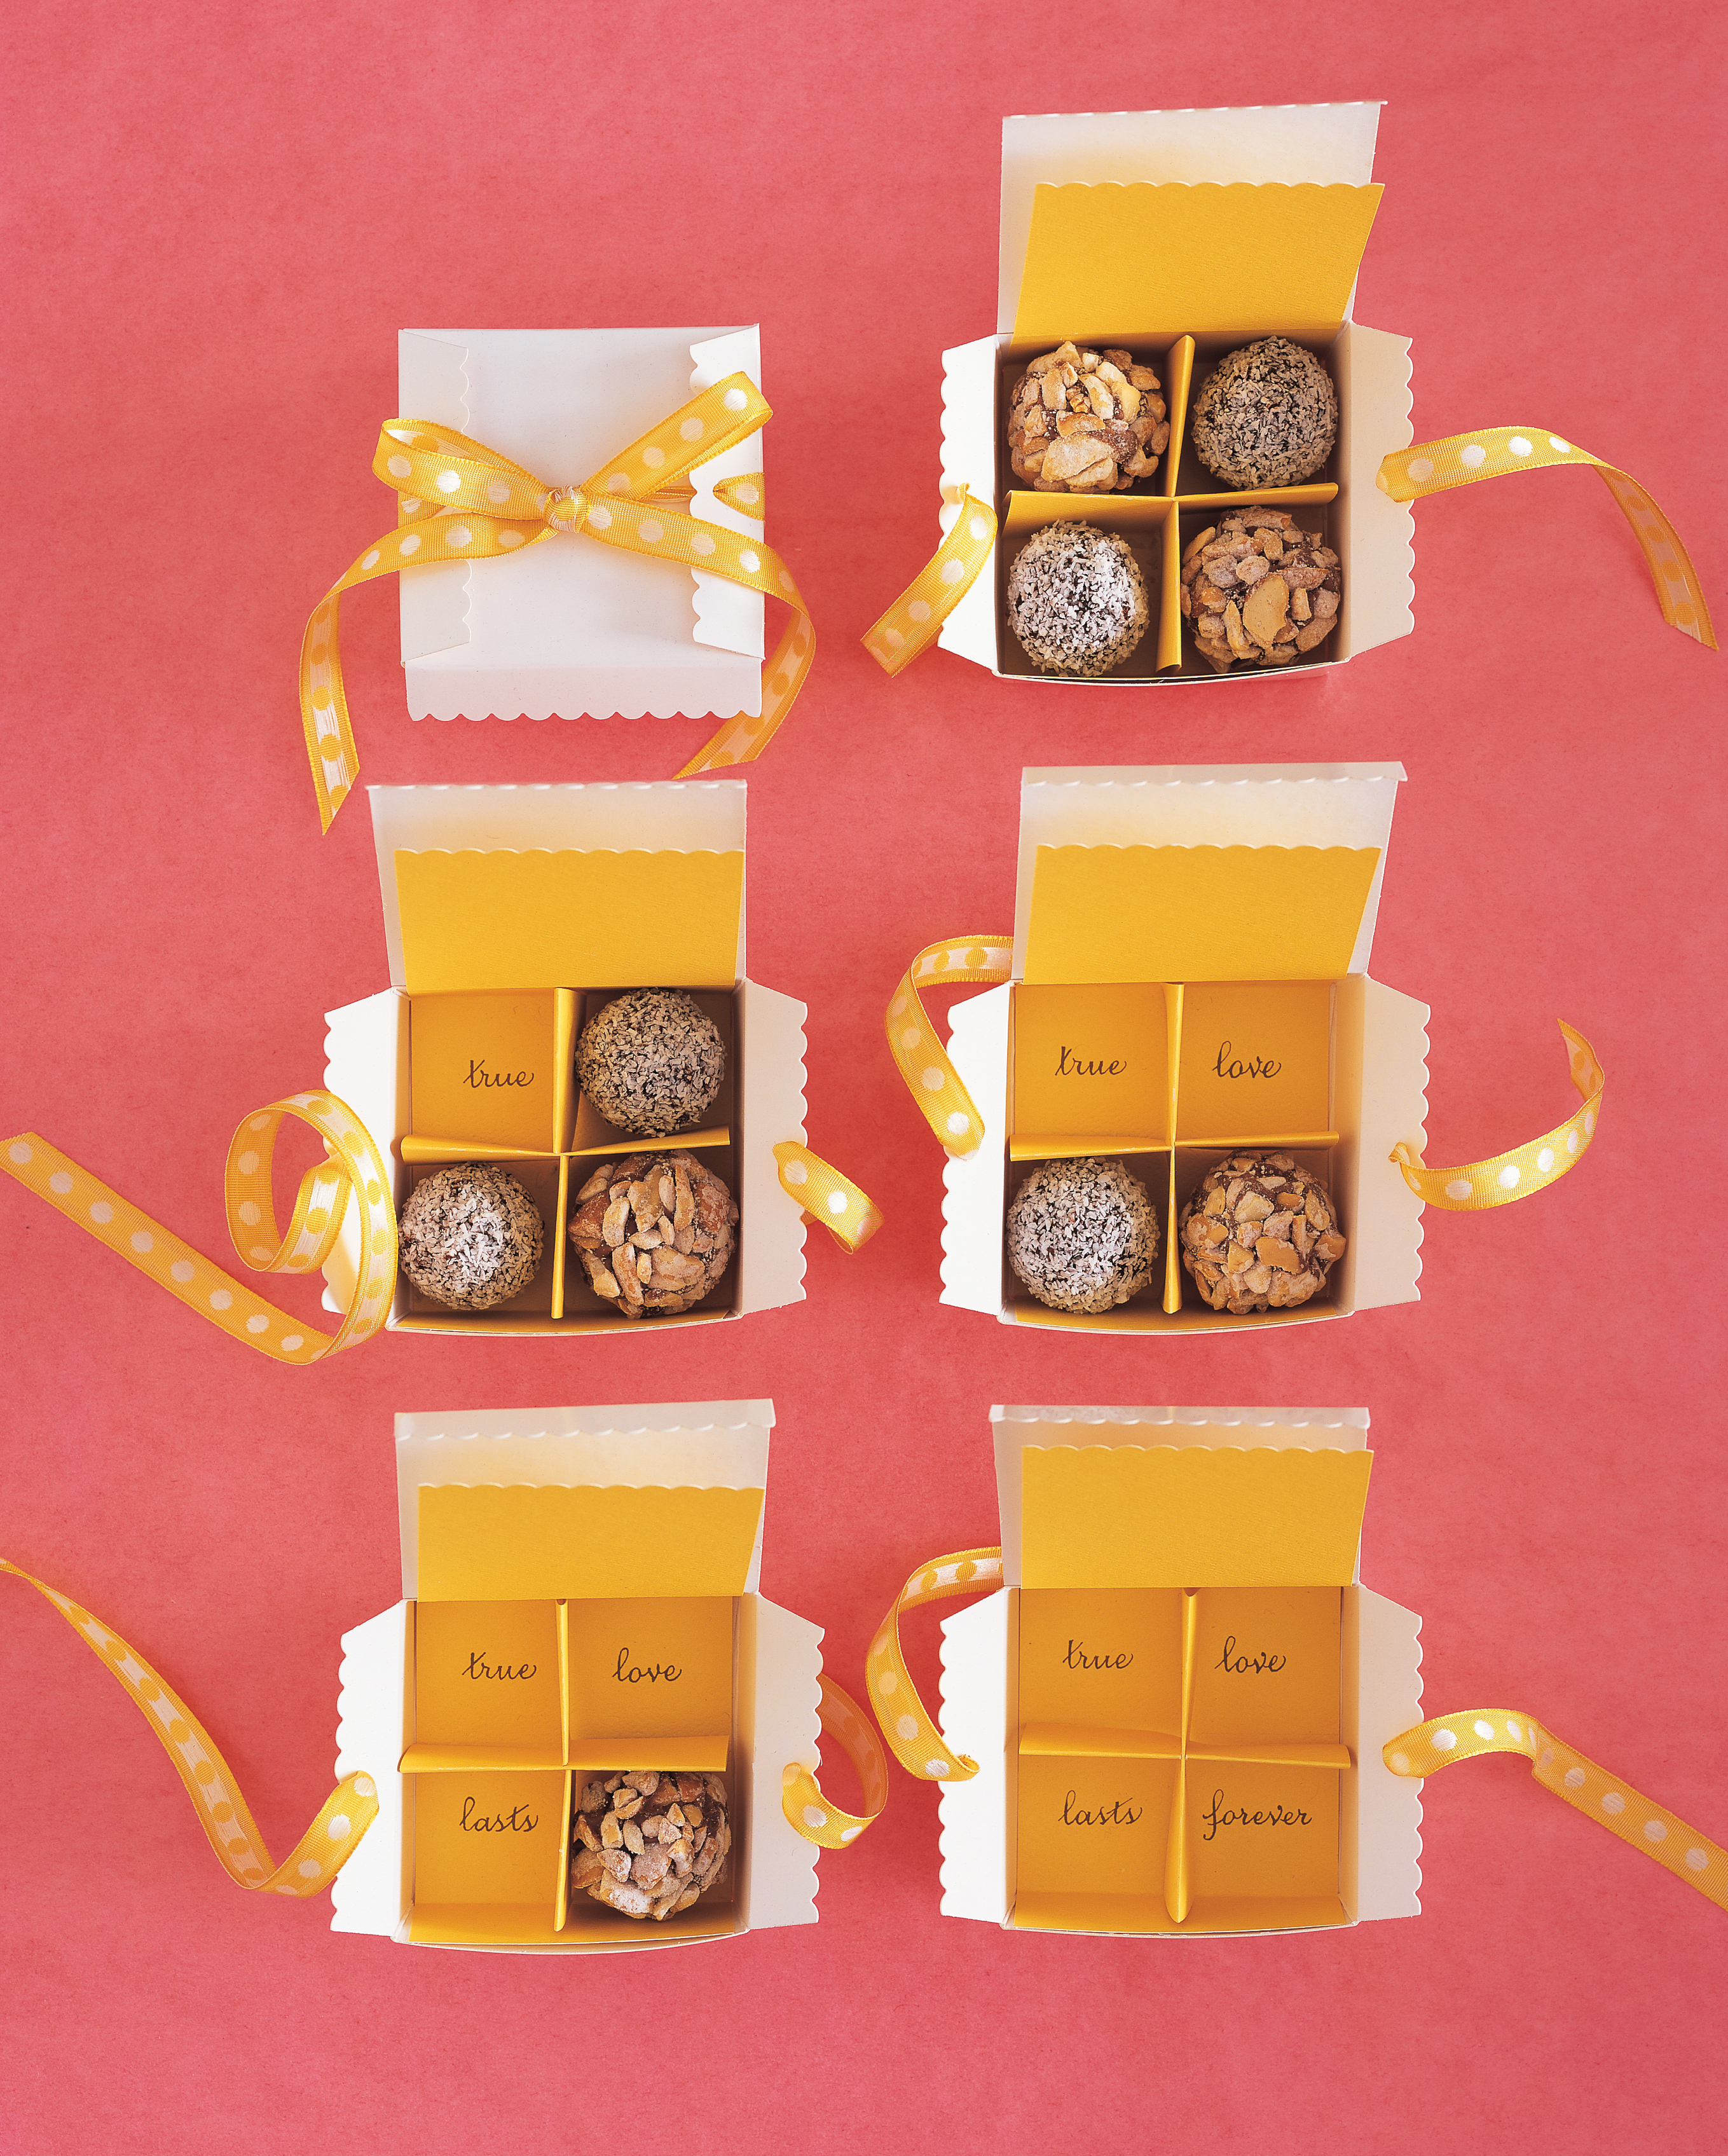 diy-favor-boxes-all-tied-up-sum04-0715.jpg